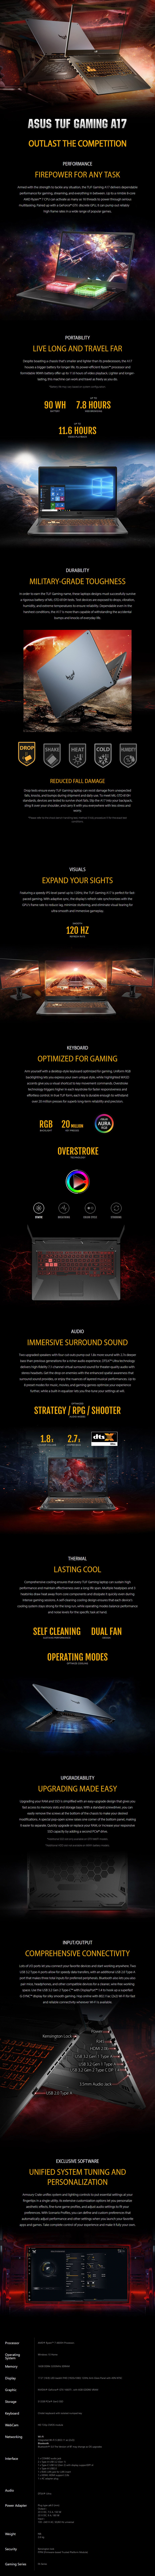 "ASUS TUF Gaming FA706IU 17.3"" 120Hz Gaming Laptop R7-4800H 16GB 512GB GTX1660Ti - Overview 1"